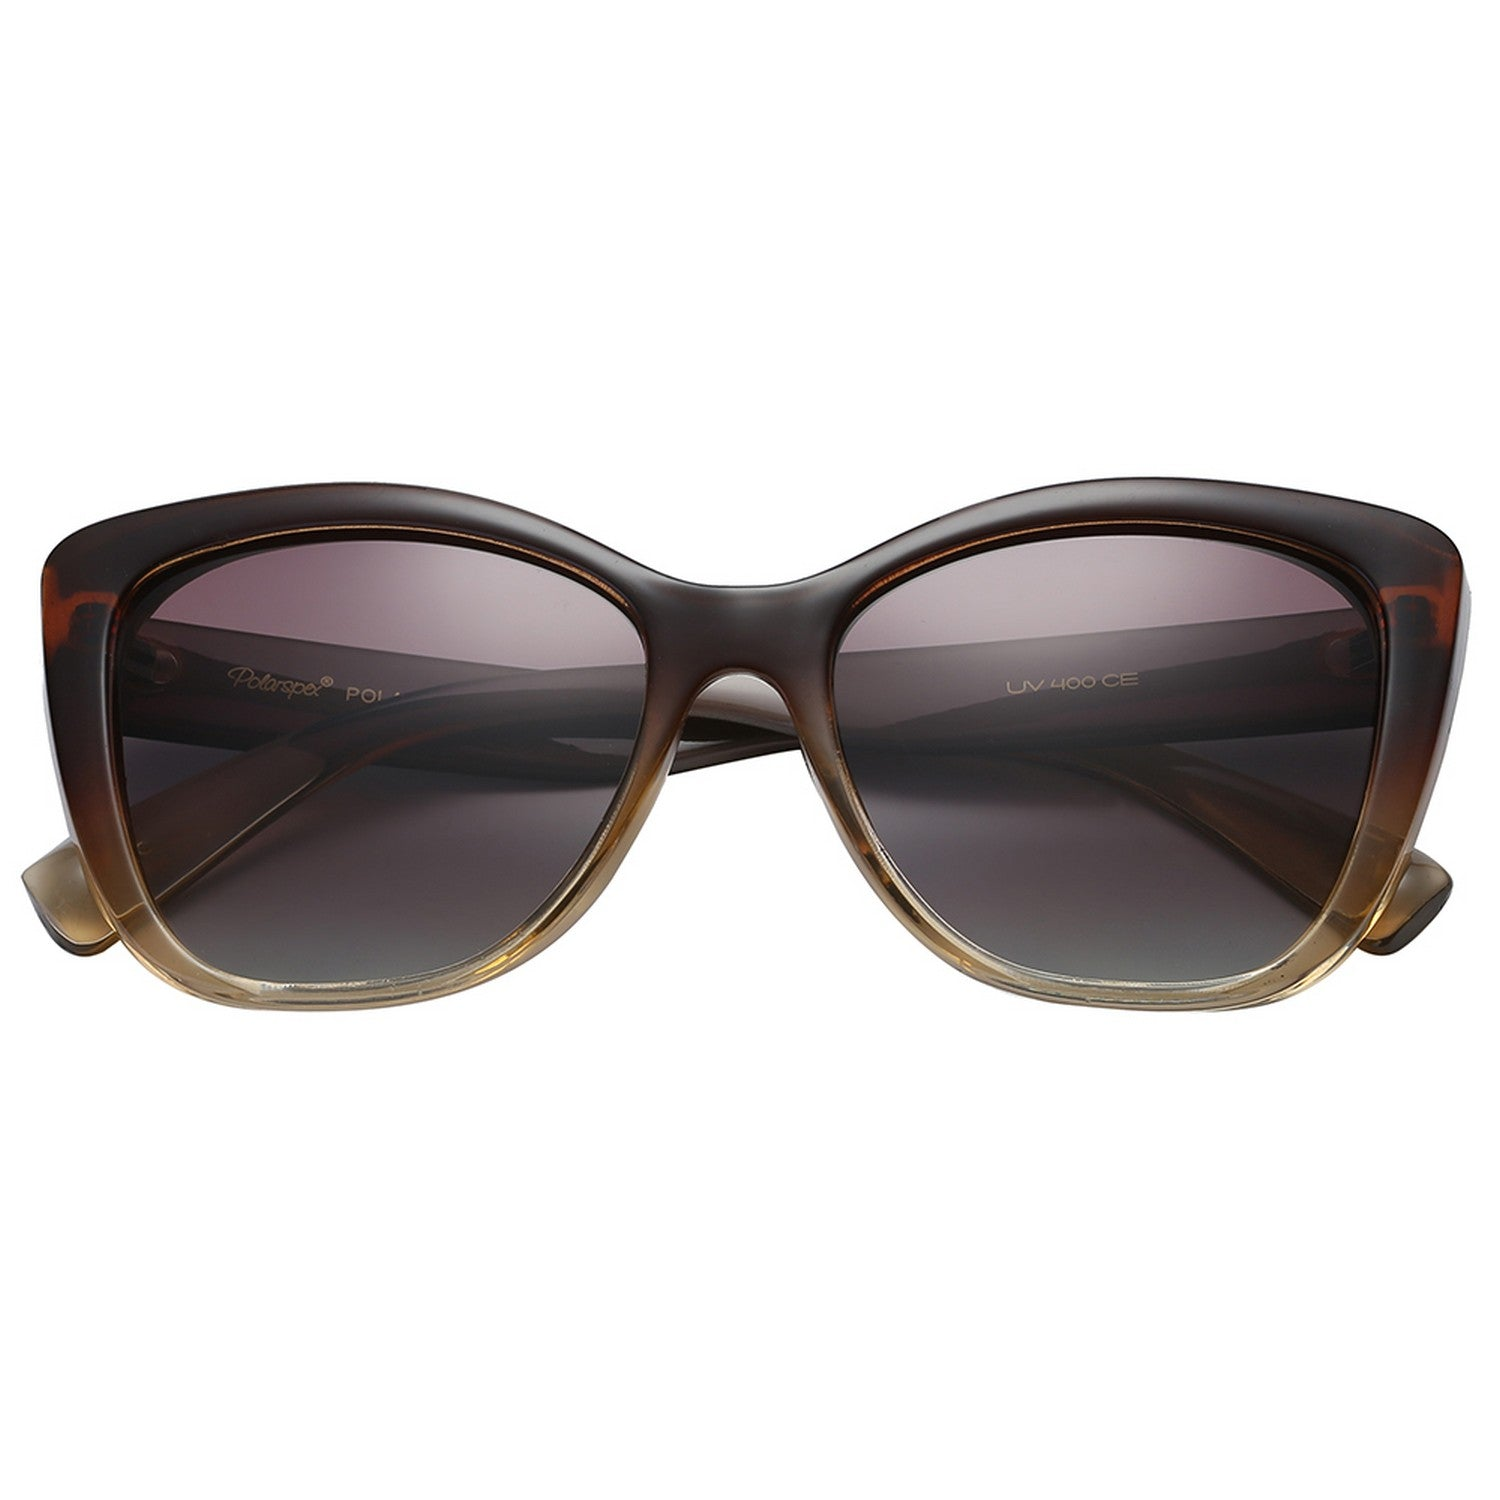 Polarspex Polarized Jackie-O Cat Eyes Style Sunglasses with Gradient Brown Frames and Polarized Gradient Brown Lenses for Women